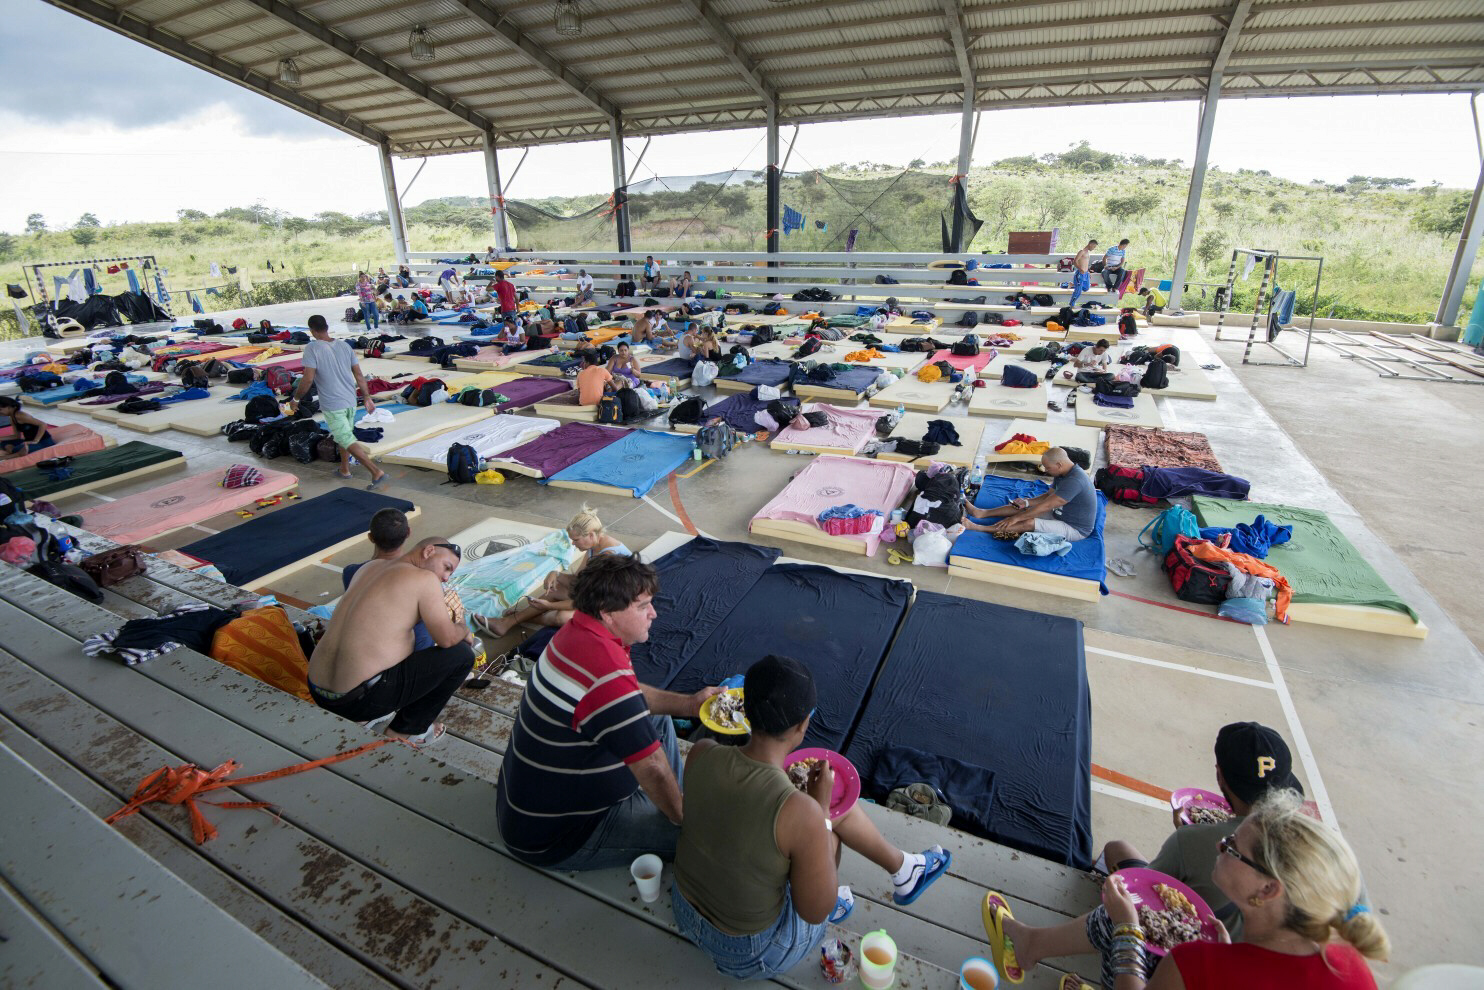 Cuban migrants rest in a shelter in La Cruz, Costa Rica